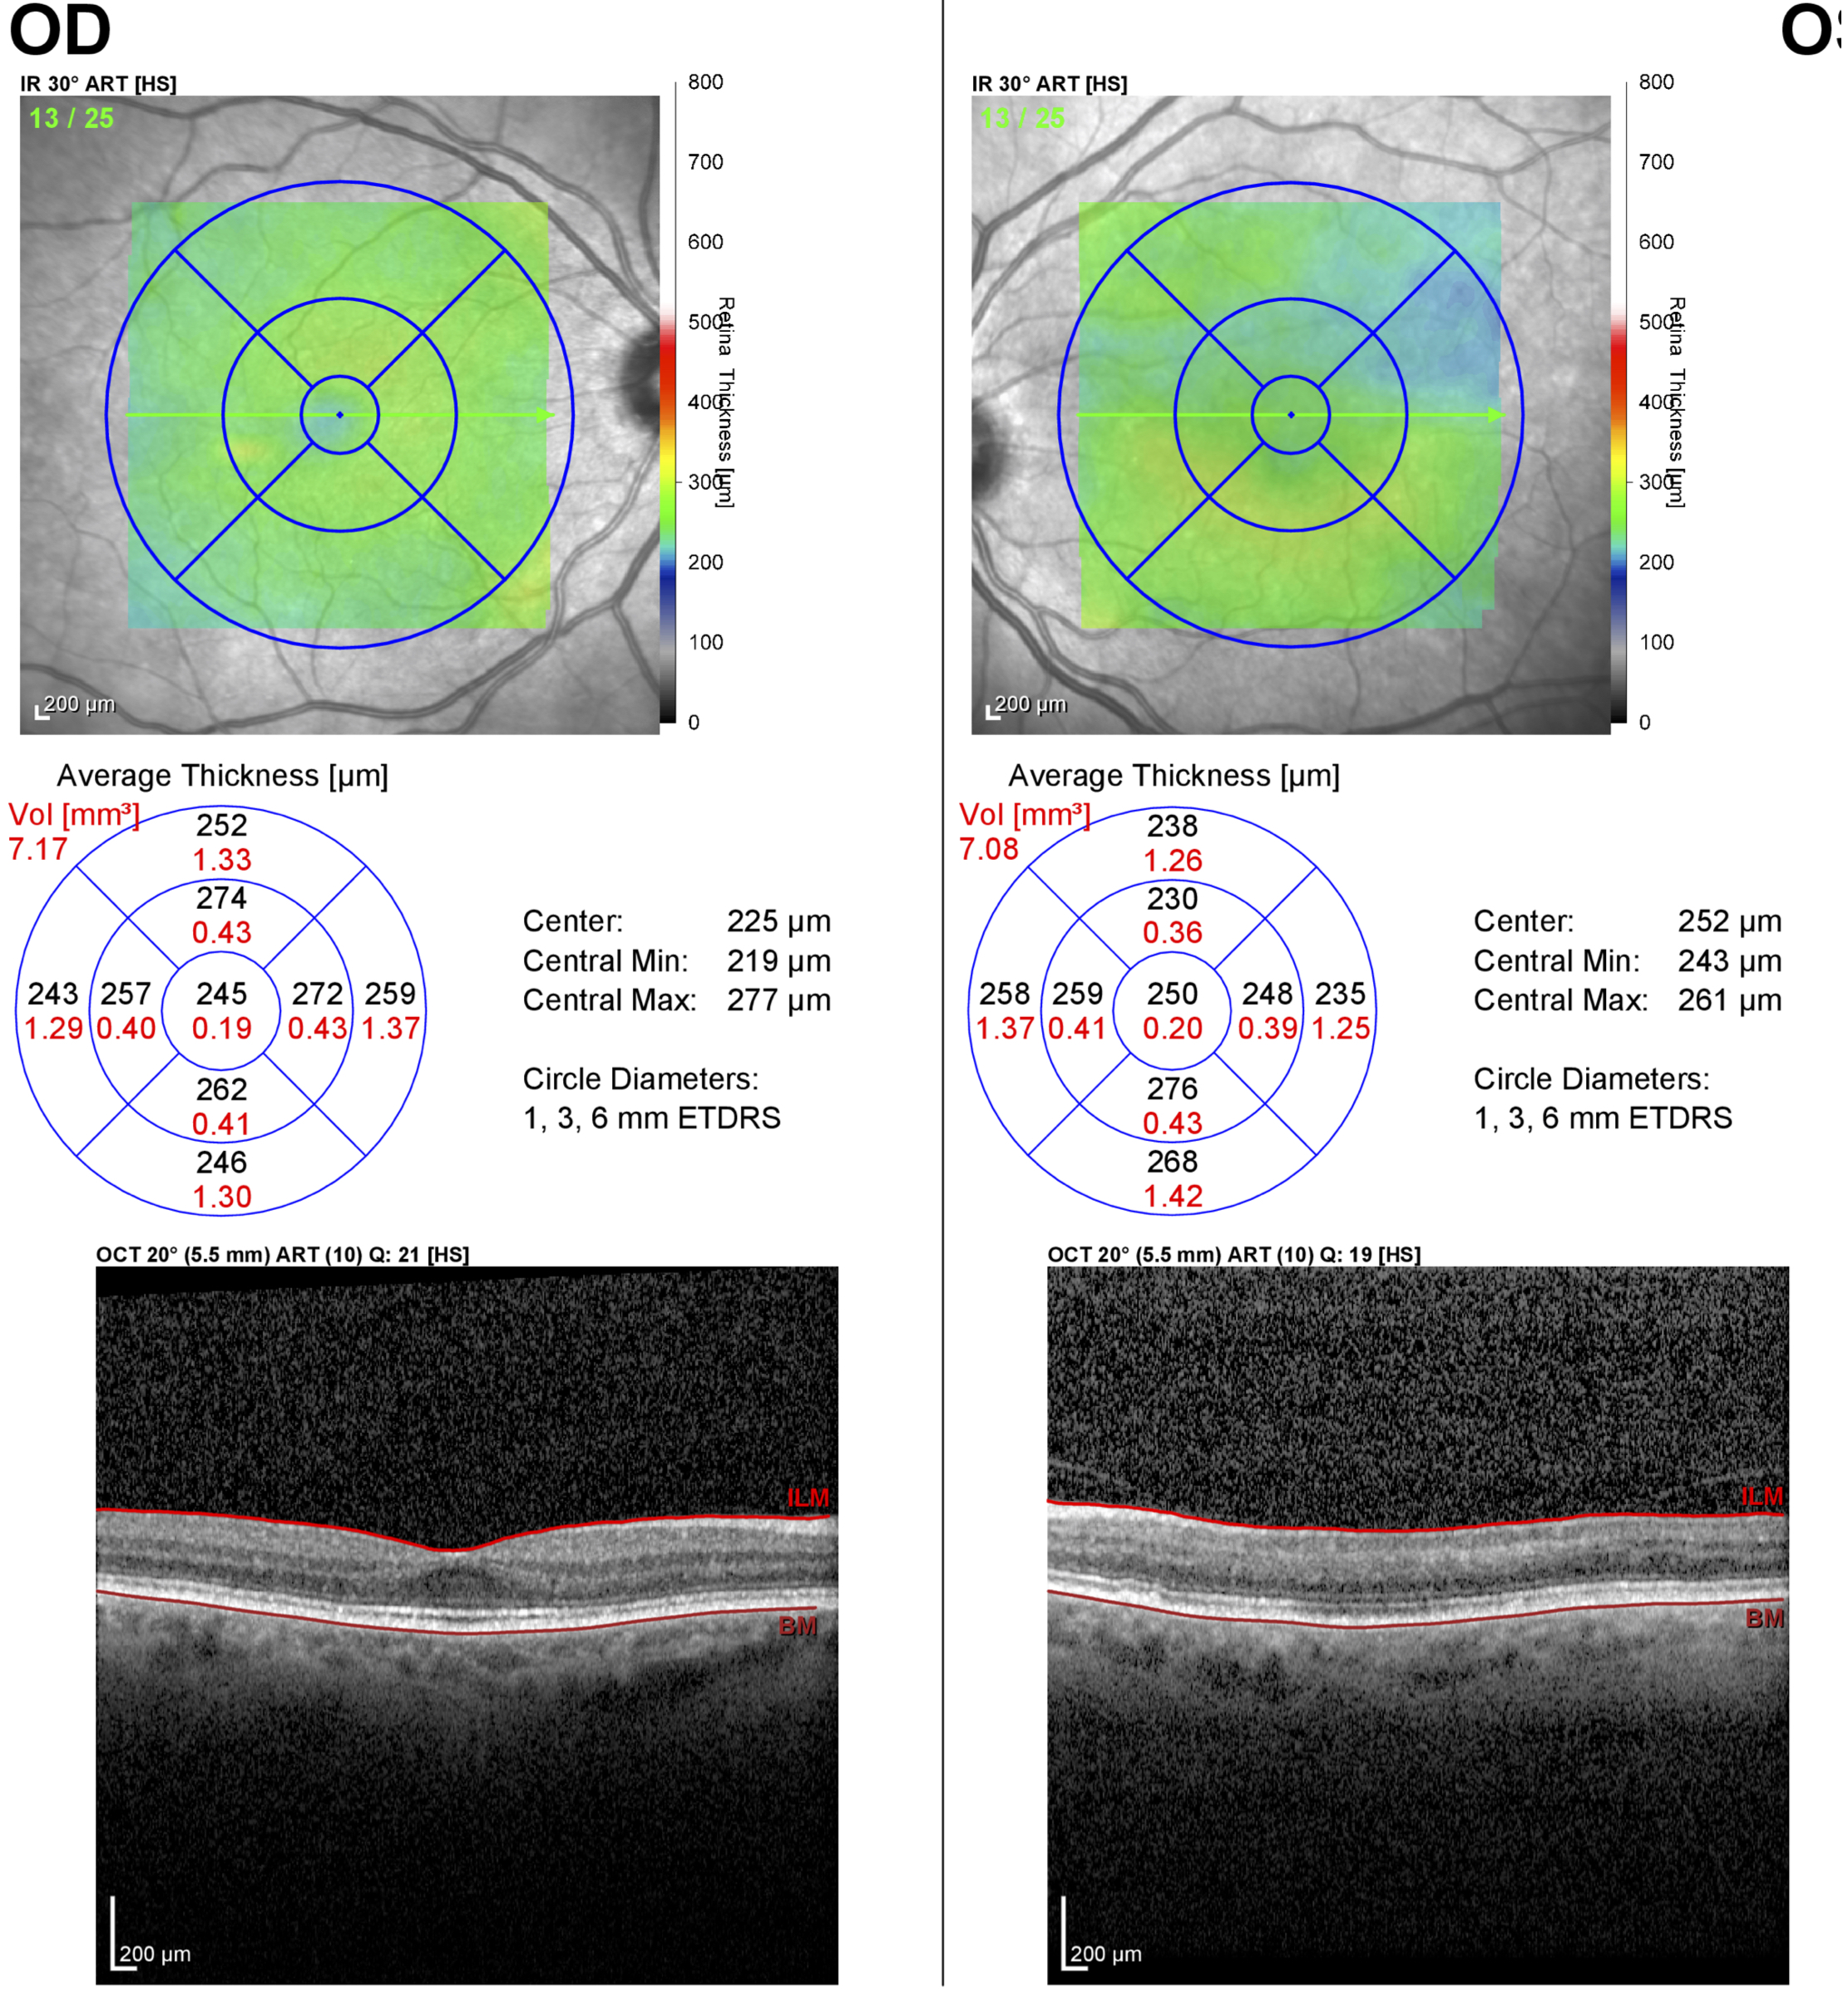 Optical coherence tomography of the macula showing loss of the inner retina in branch retinal artery occlusion (different patient, left eye).  In contrast to the previous OCT, there is a complete loss of the foveal contour and the inner layers of the retina are thinned and less defined than the normal right eye.